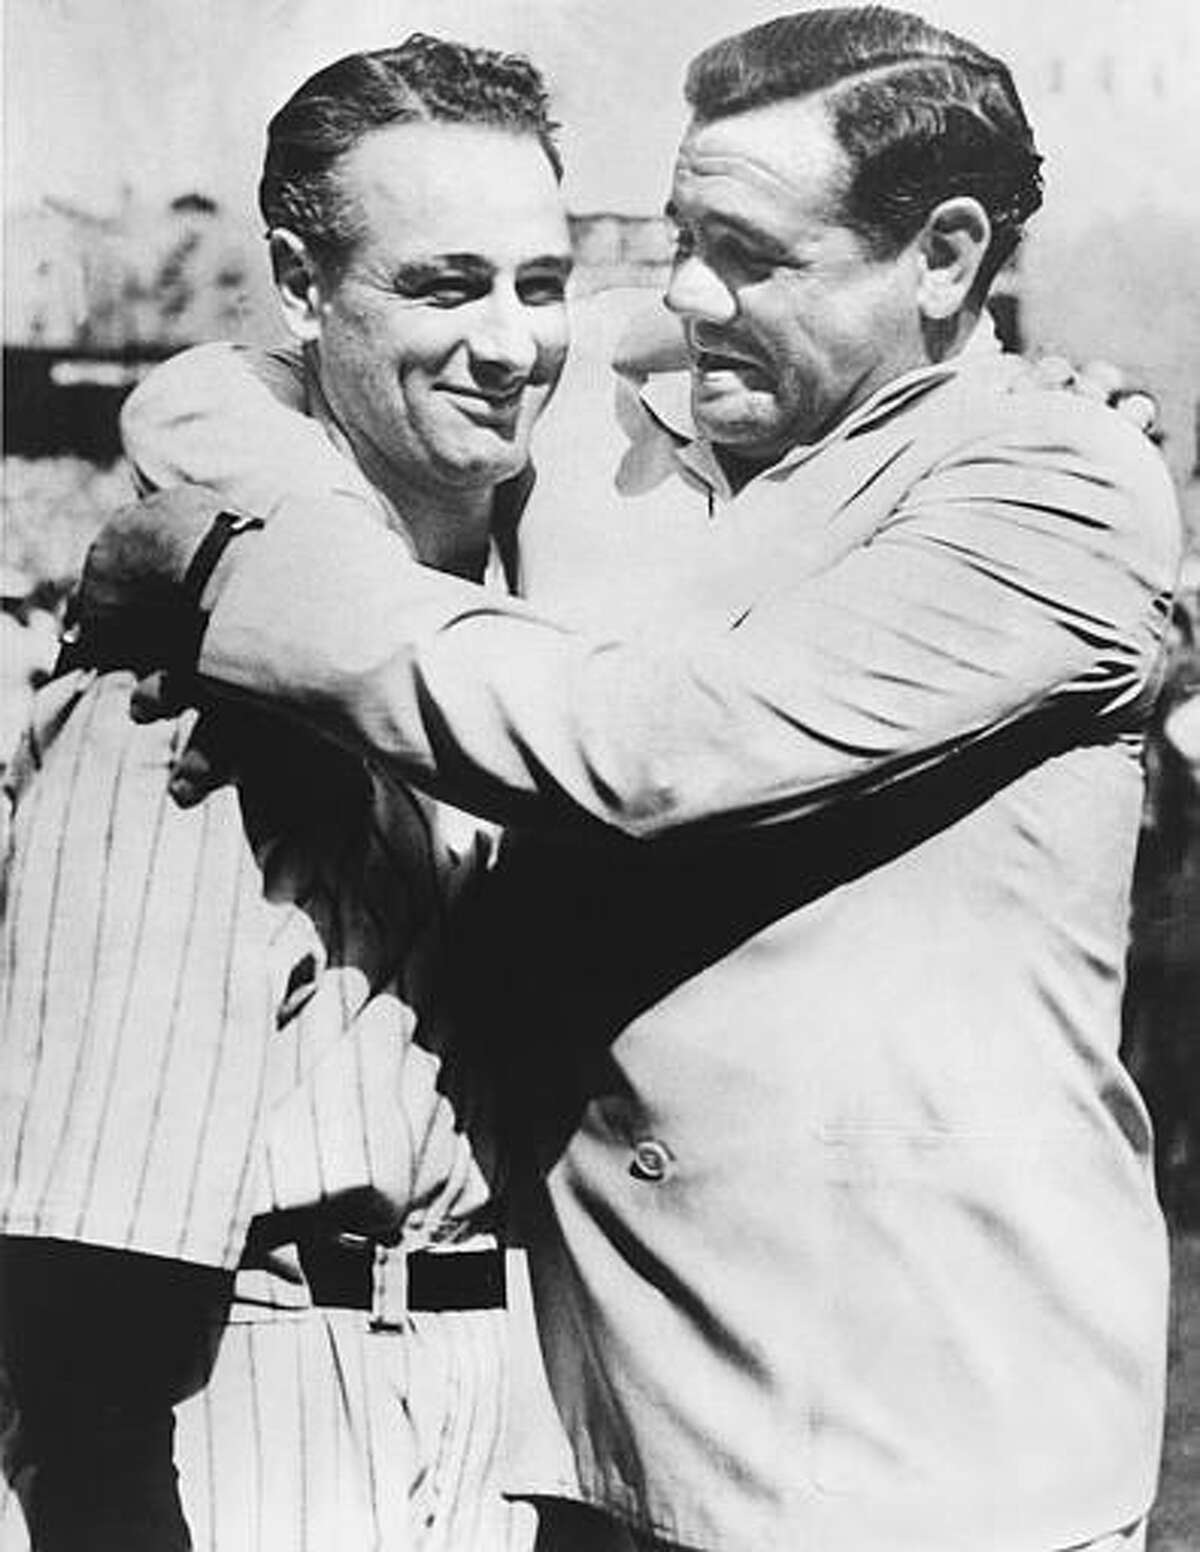 Babe Ruth, right, immortal New York Yankee baseball player comforts Lou Gehrig, who was almost too moved to speak to the vast throng which acclaimed him at Yankee Stadium July 4, 1939 where the Yankees met the Washington Senators in a doubleheader. Gehrig, famed iron man of the Yankees, was honored by players and fans. As an added honor, the world championship flag that the Yankees won in 1927 with a team hailed as one of baseball's greatest was unfurled at the stadium. (AP Photo)